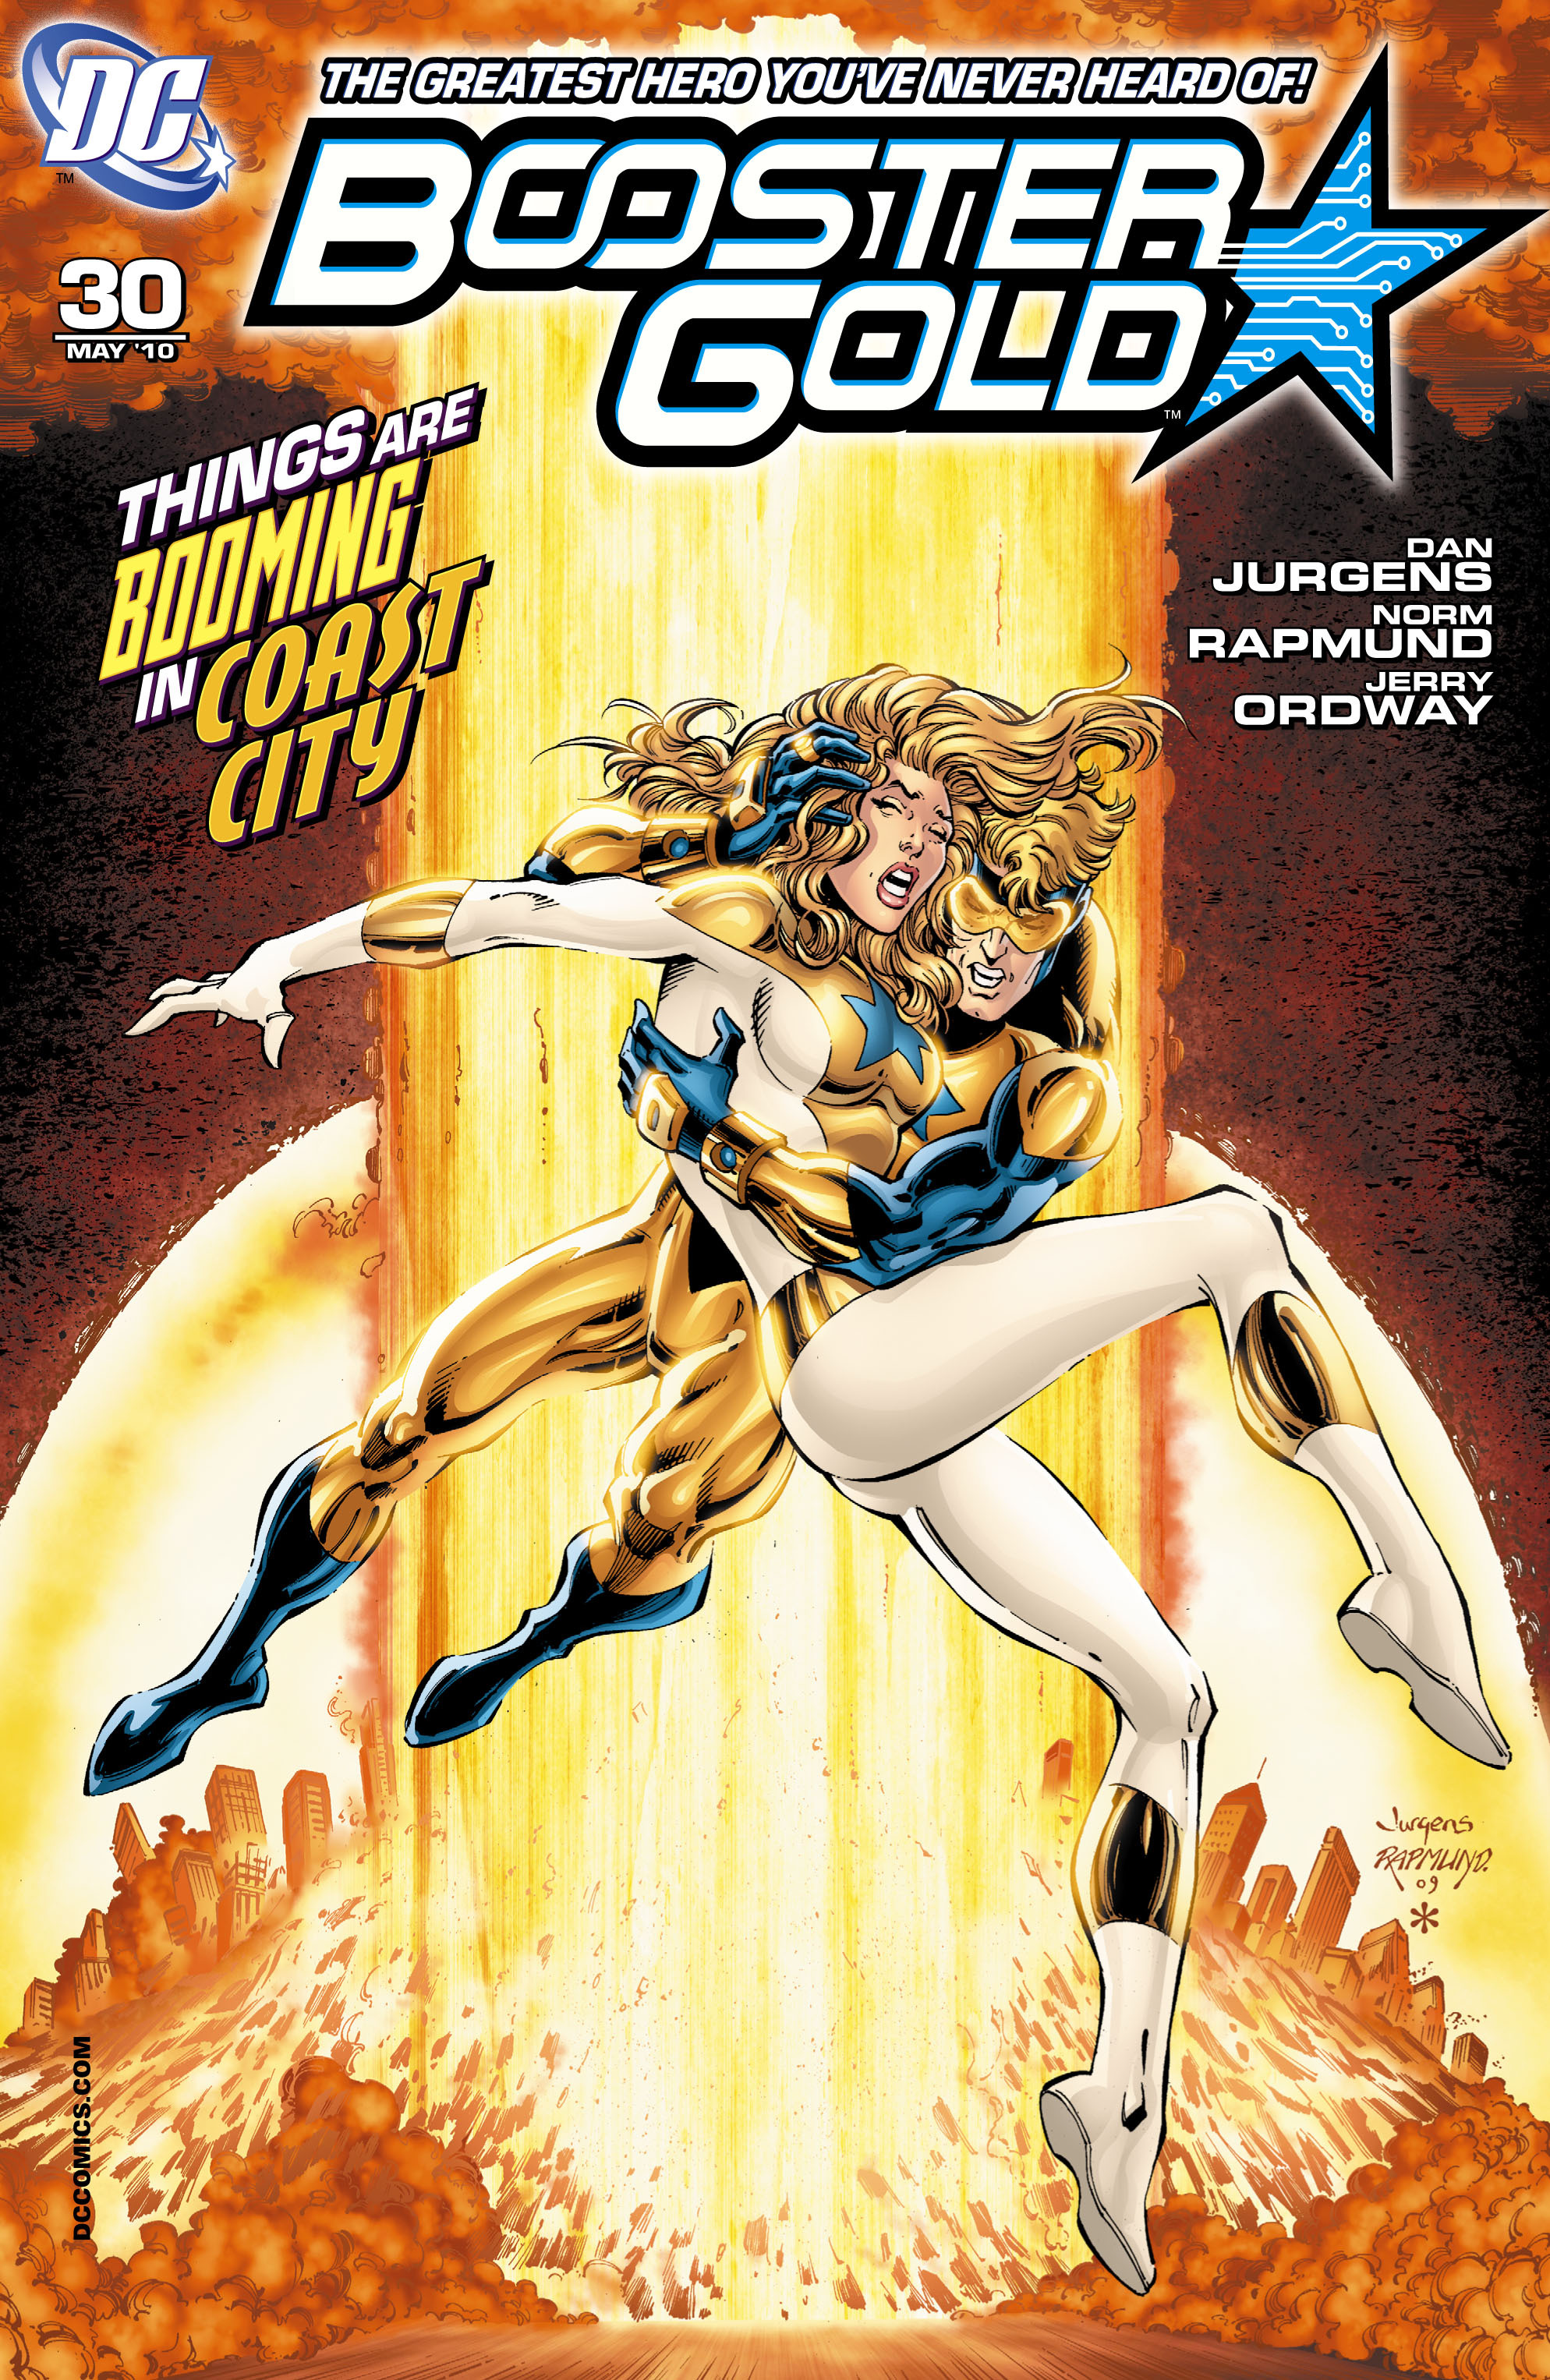 Booster Gold 2007 Issue 30